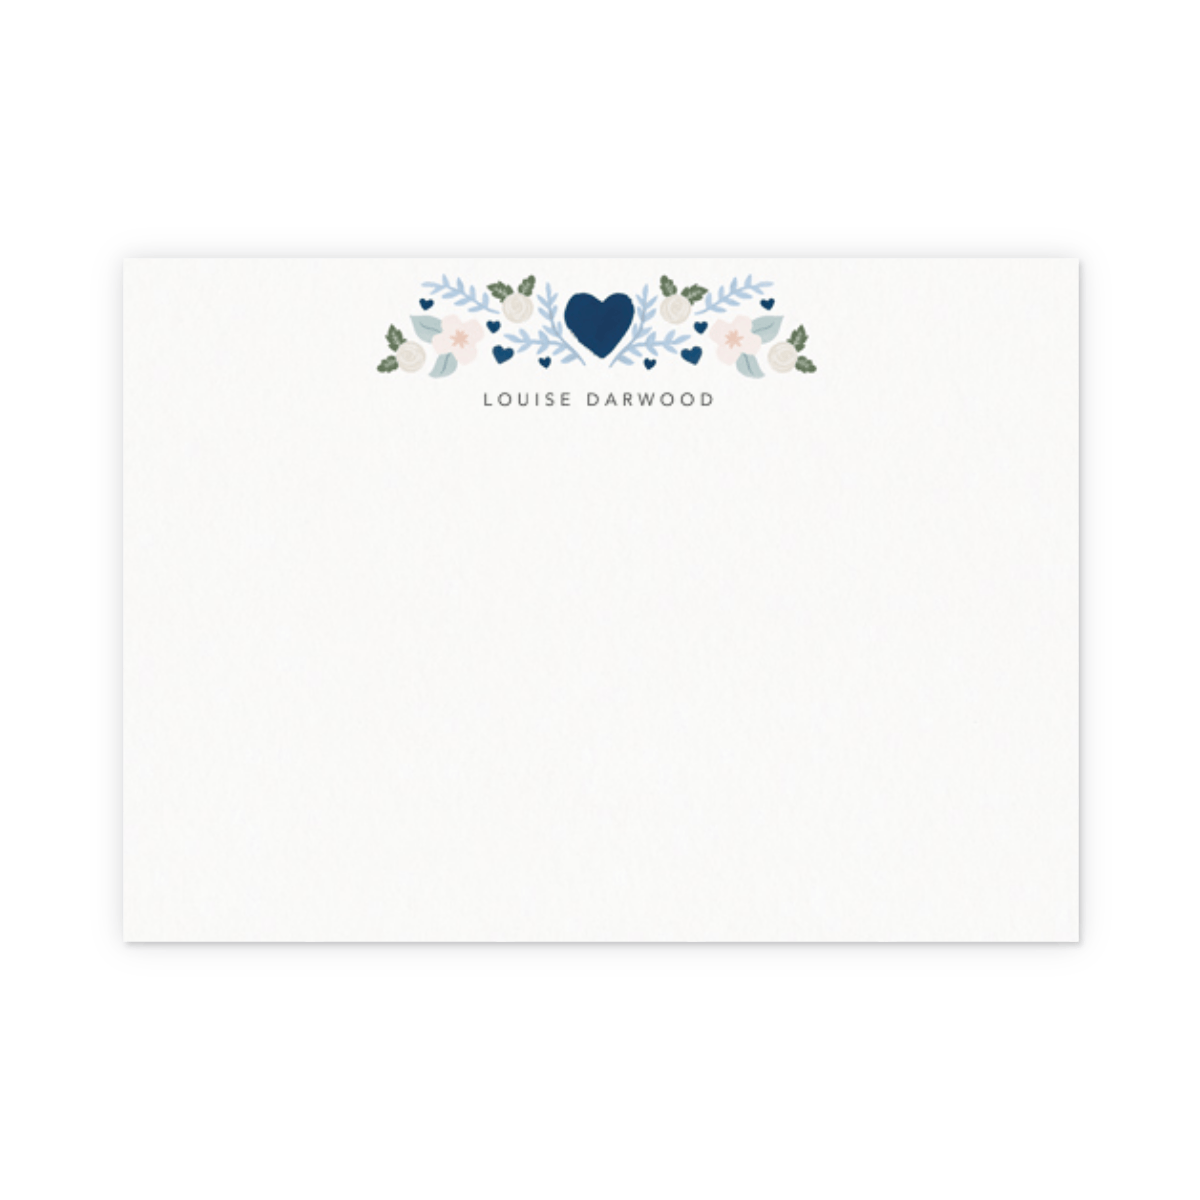 Https%3a%2f%2fwww.papier.com%2fproduct image%2f7883%2f10%2ffolk heart blue 1945 front 1551217223.png?ixlib=rb 1.1